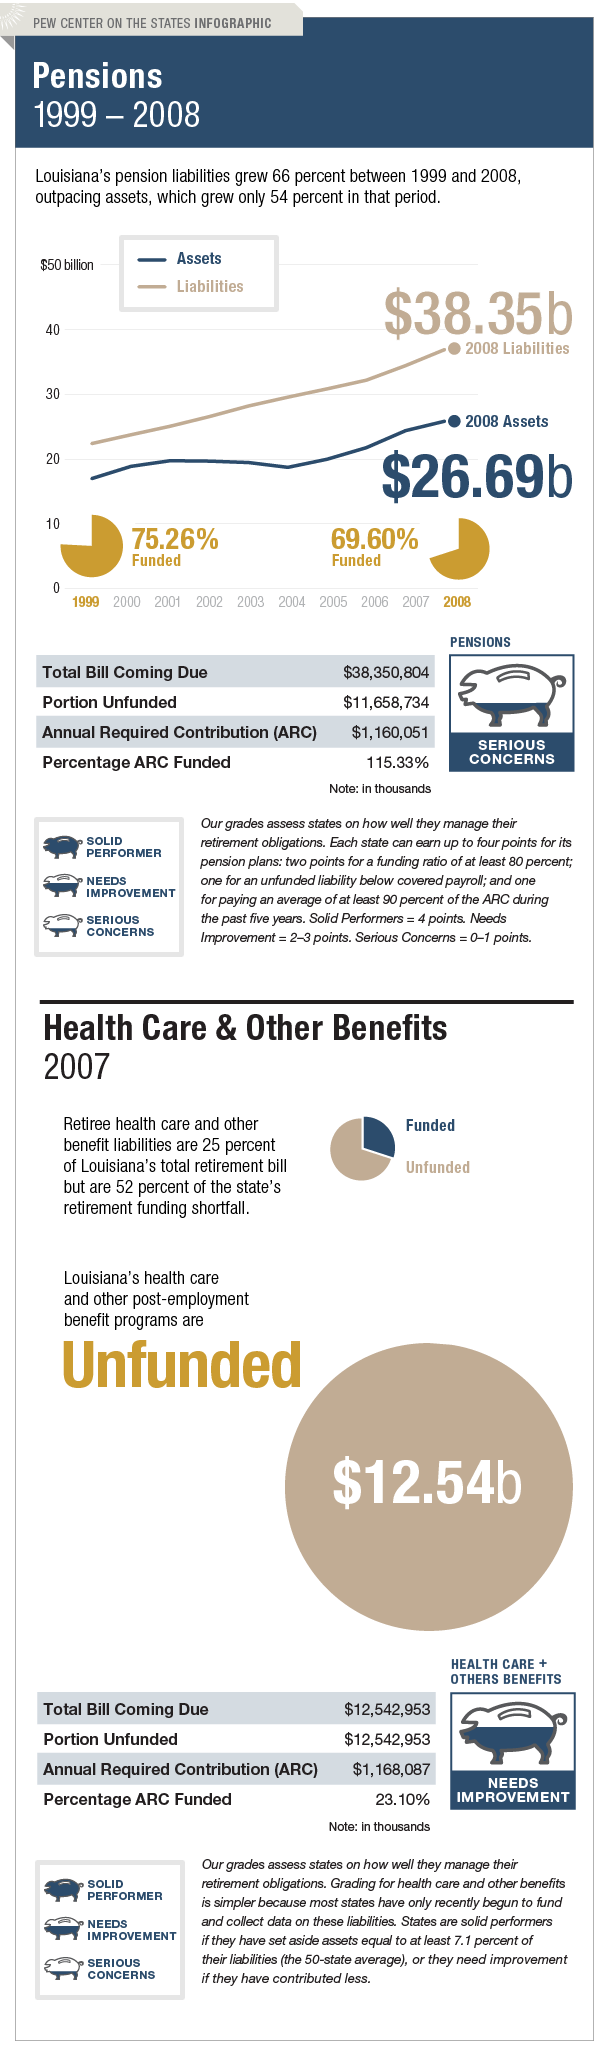 The Trillion Dollar Gap Louisiana Pension Funding